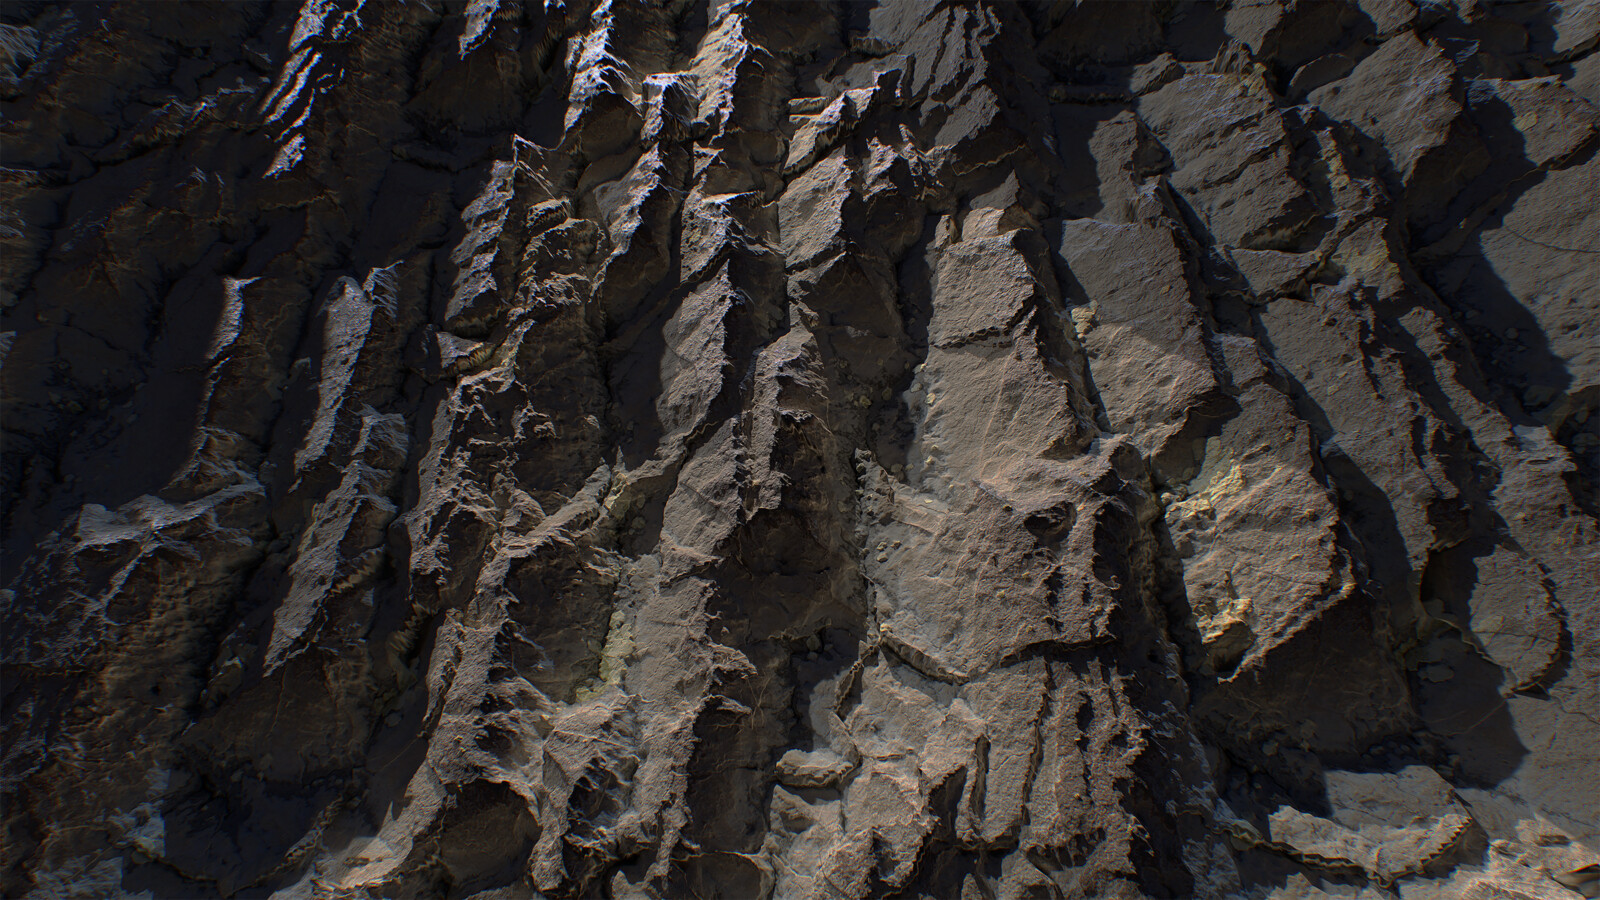 Sharp Cliff Study made 100% in Substance Designer and rendered in Marmoset Toolbag 4.